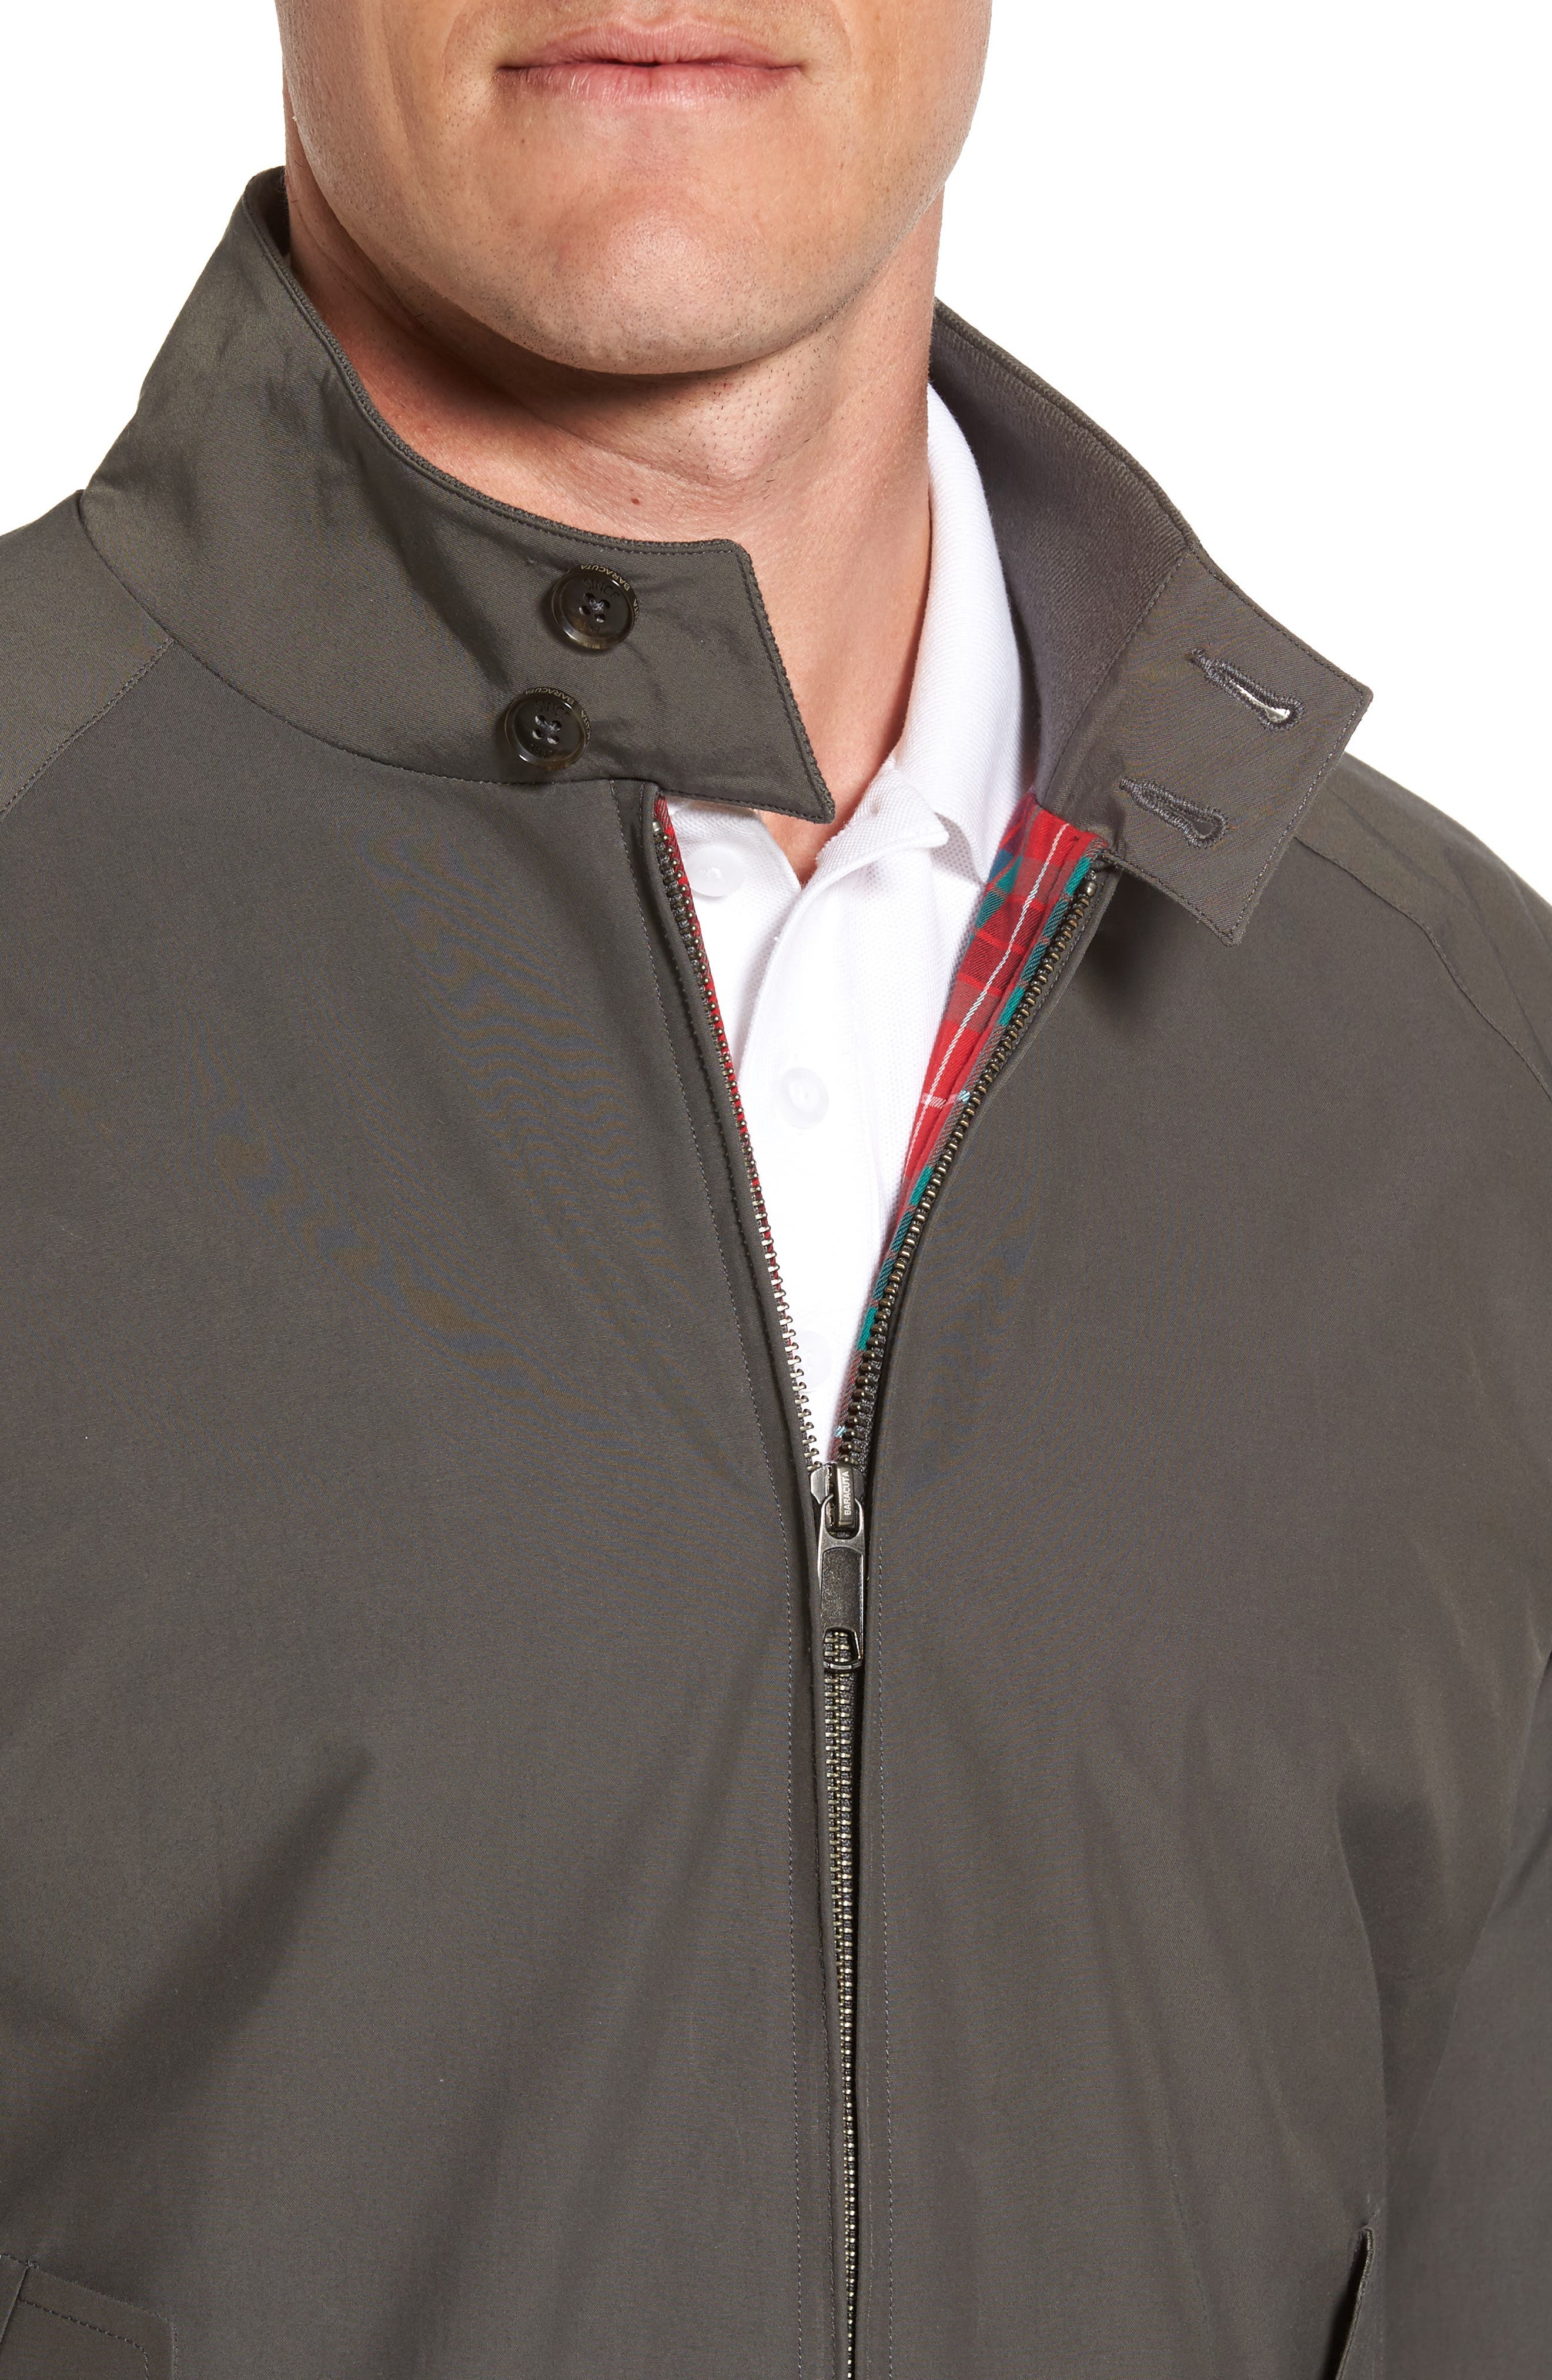 G9 Water Resistant Harrington Jacket,                             Alternate thumbnail 4, color,                             021